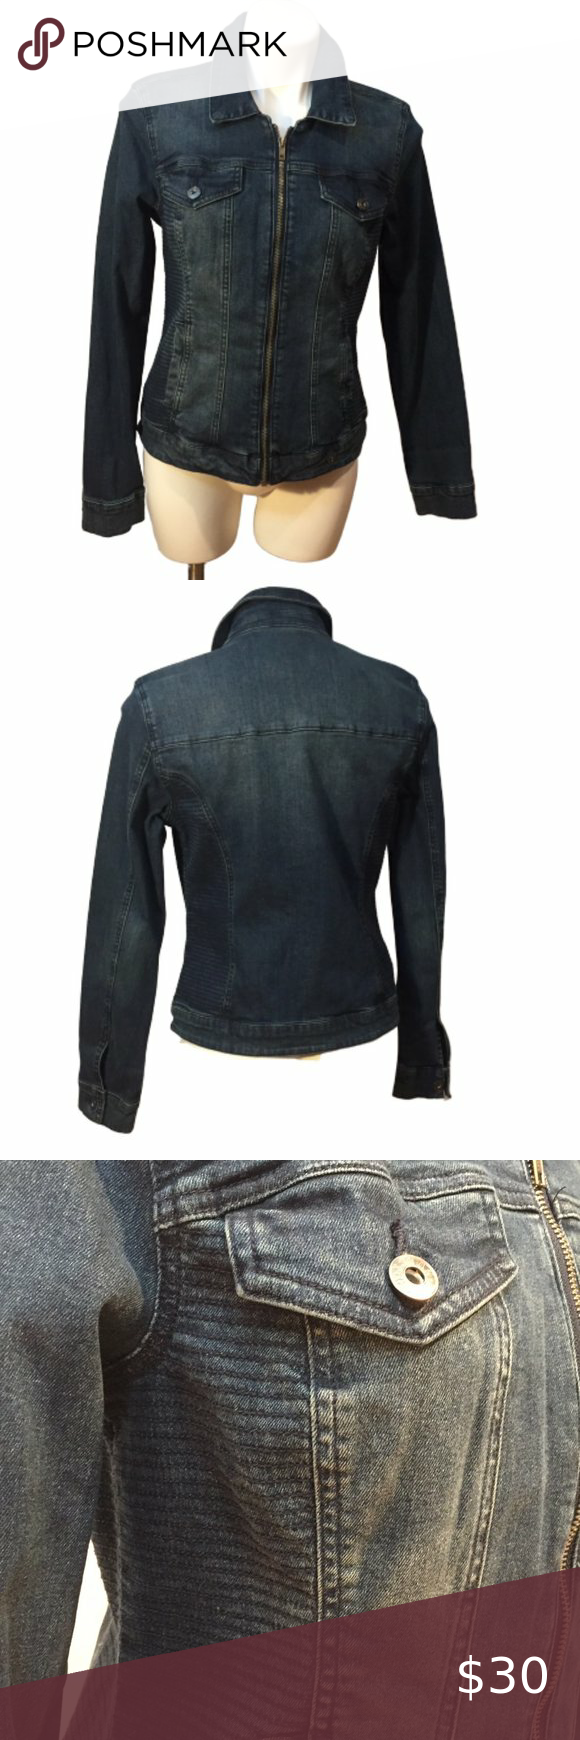 Guess Zip Front Rigby Denim Jacket Size Large Denim Jacket Denim Coat Jacket Jackets [ 1740 x 580 Pixel ]